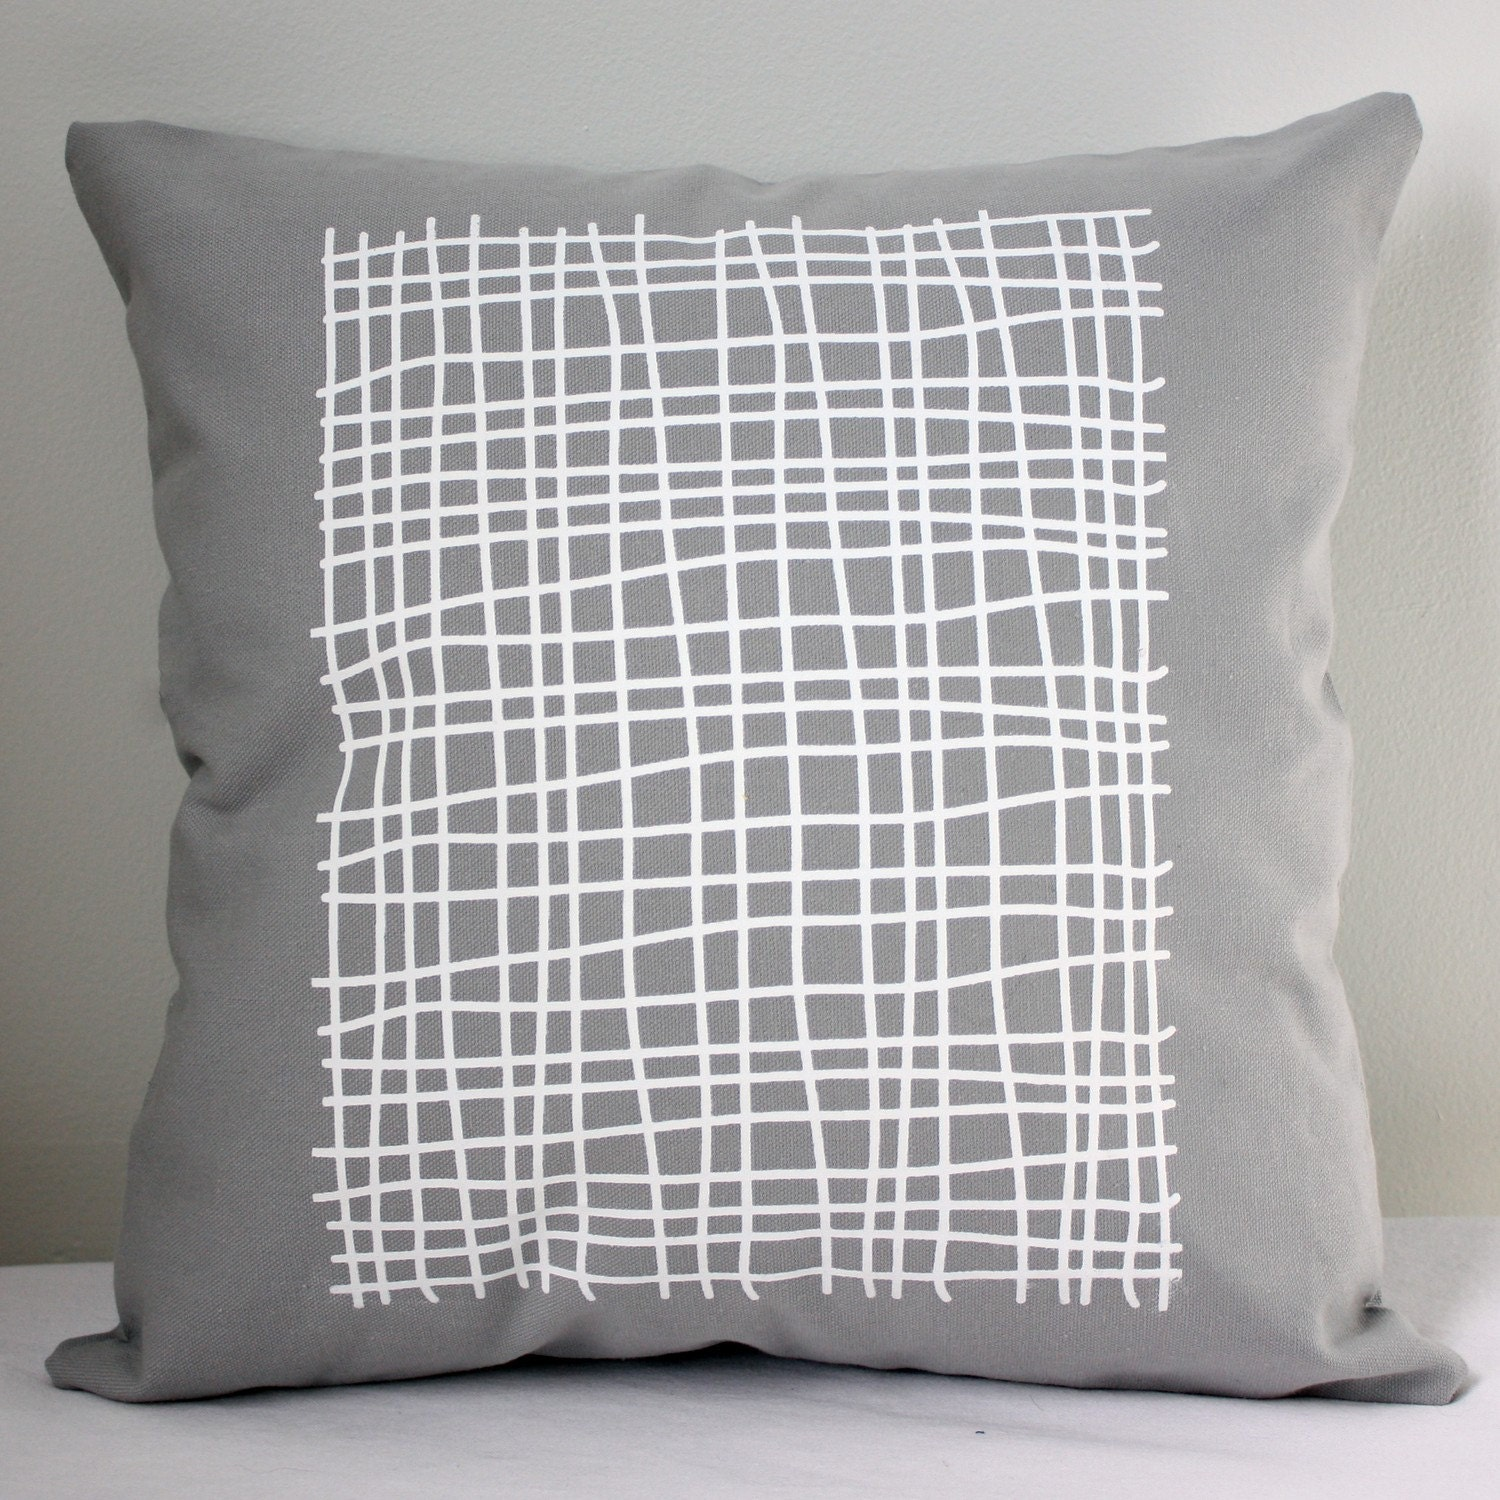 16 in Square Throw Pillow - Light Gray with Grid print in white - wickedmint